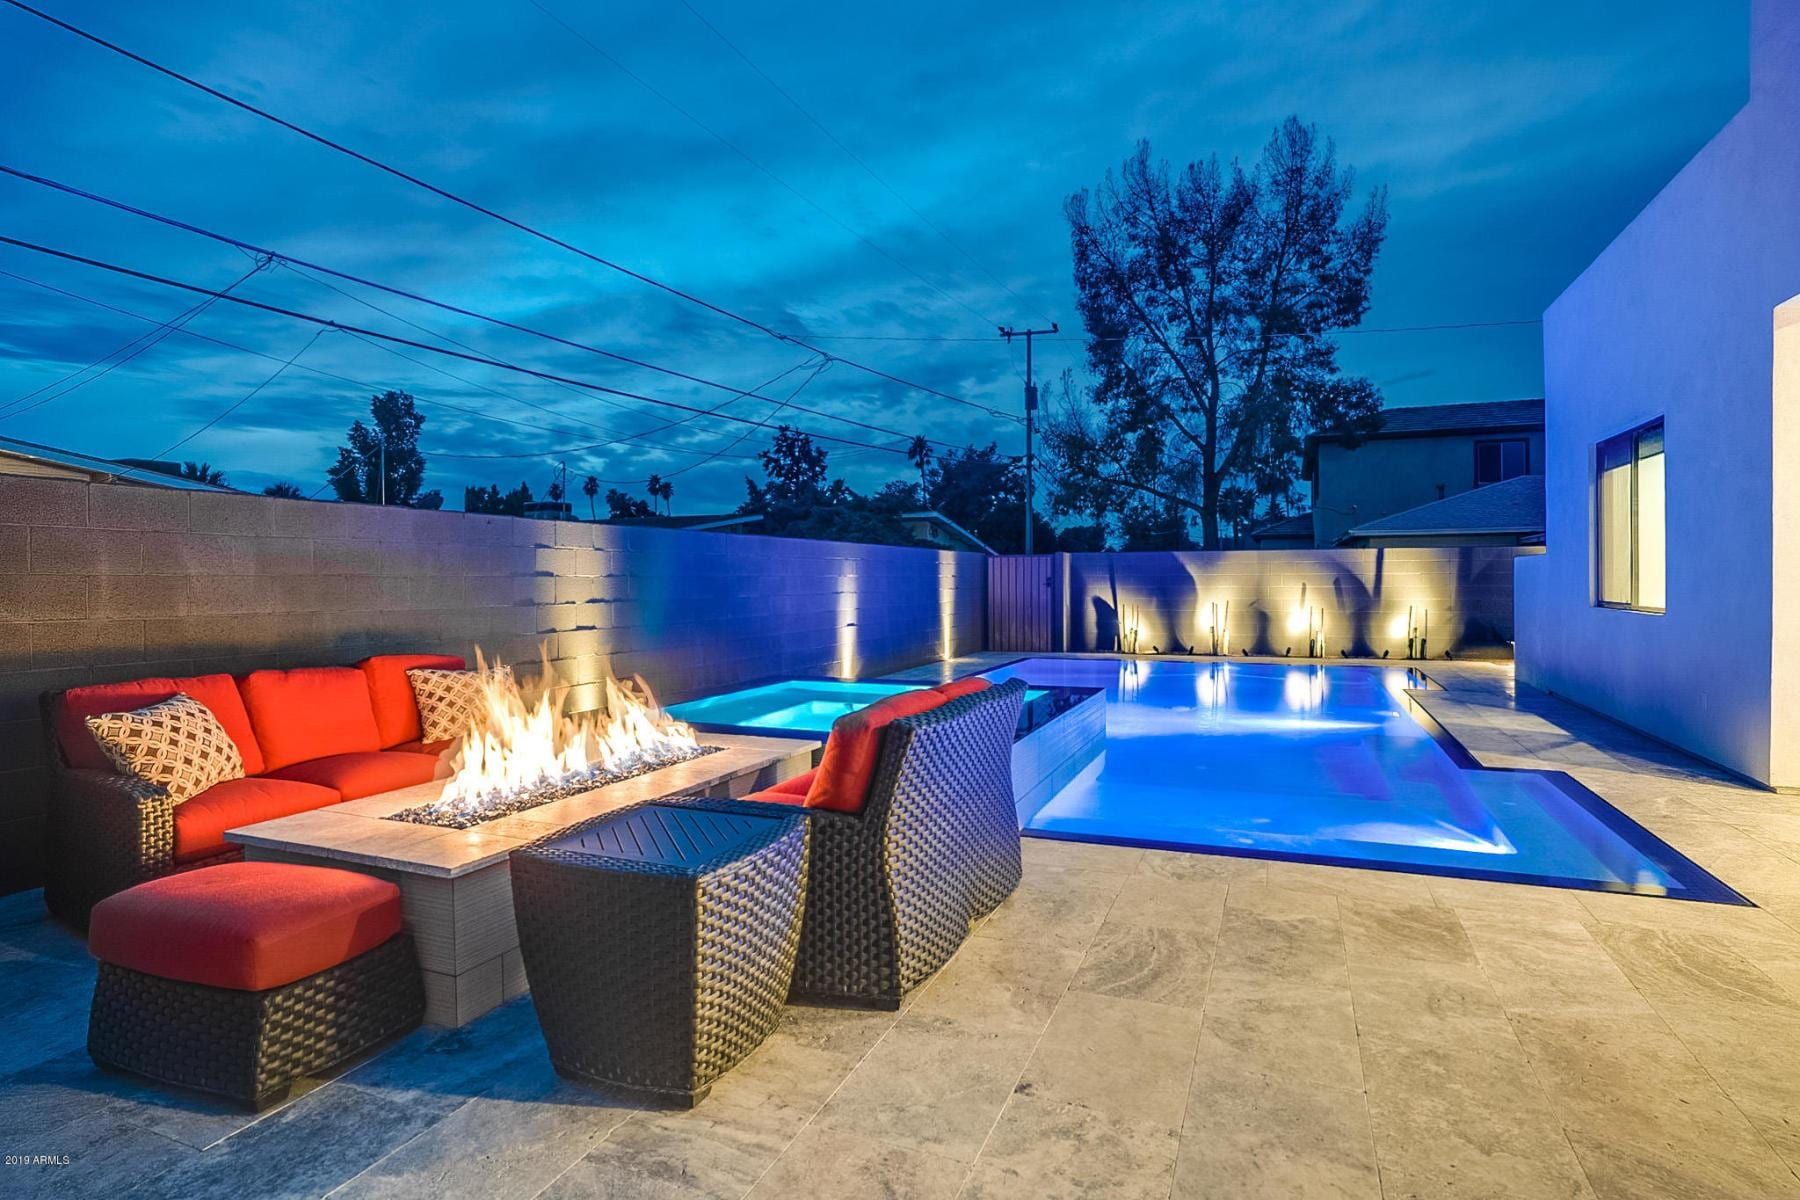 Property Image 2 - Chic Scottsdale Home with Pool and Hot Tub